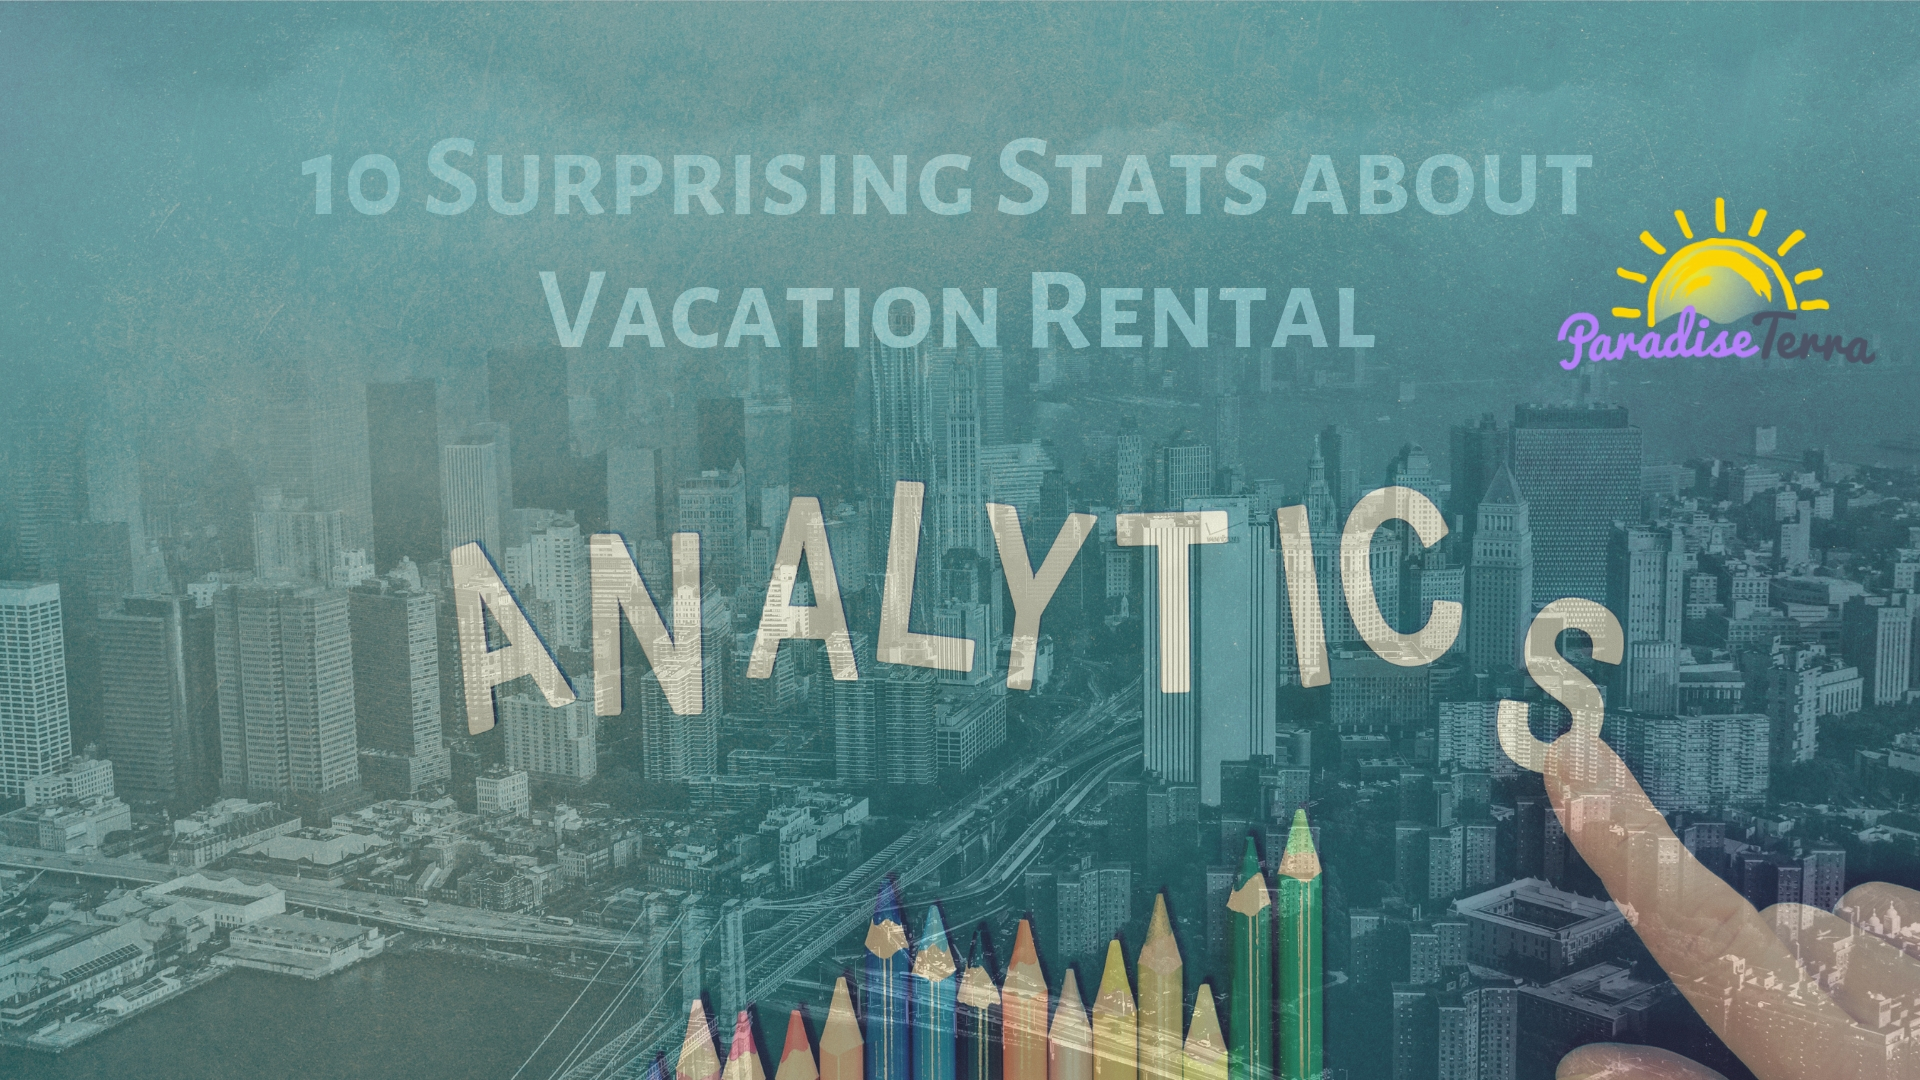 10 Surprising Statistics about Vacation Rental